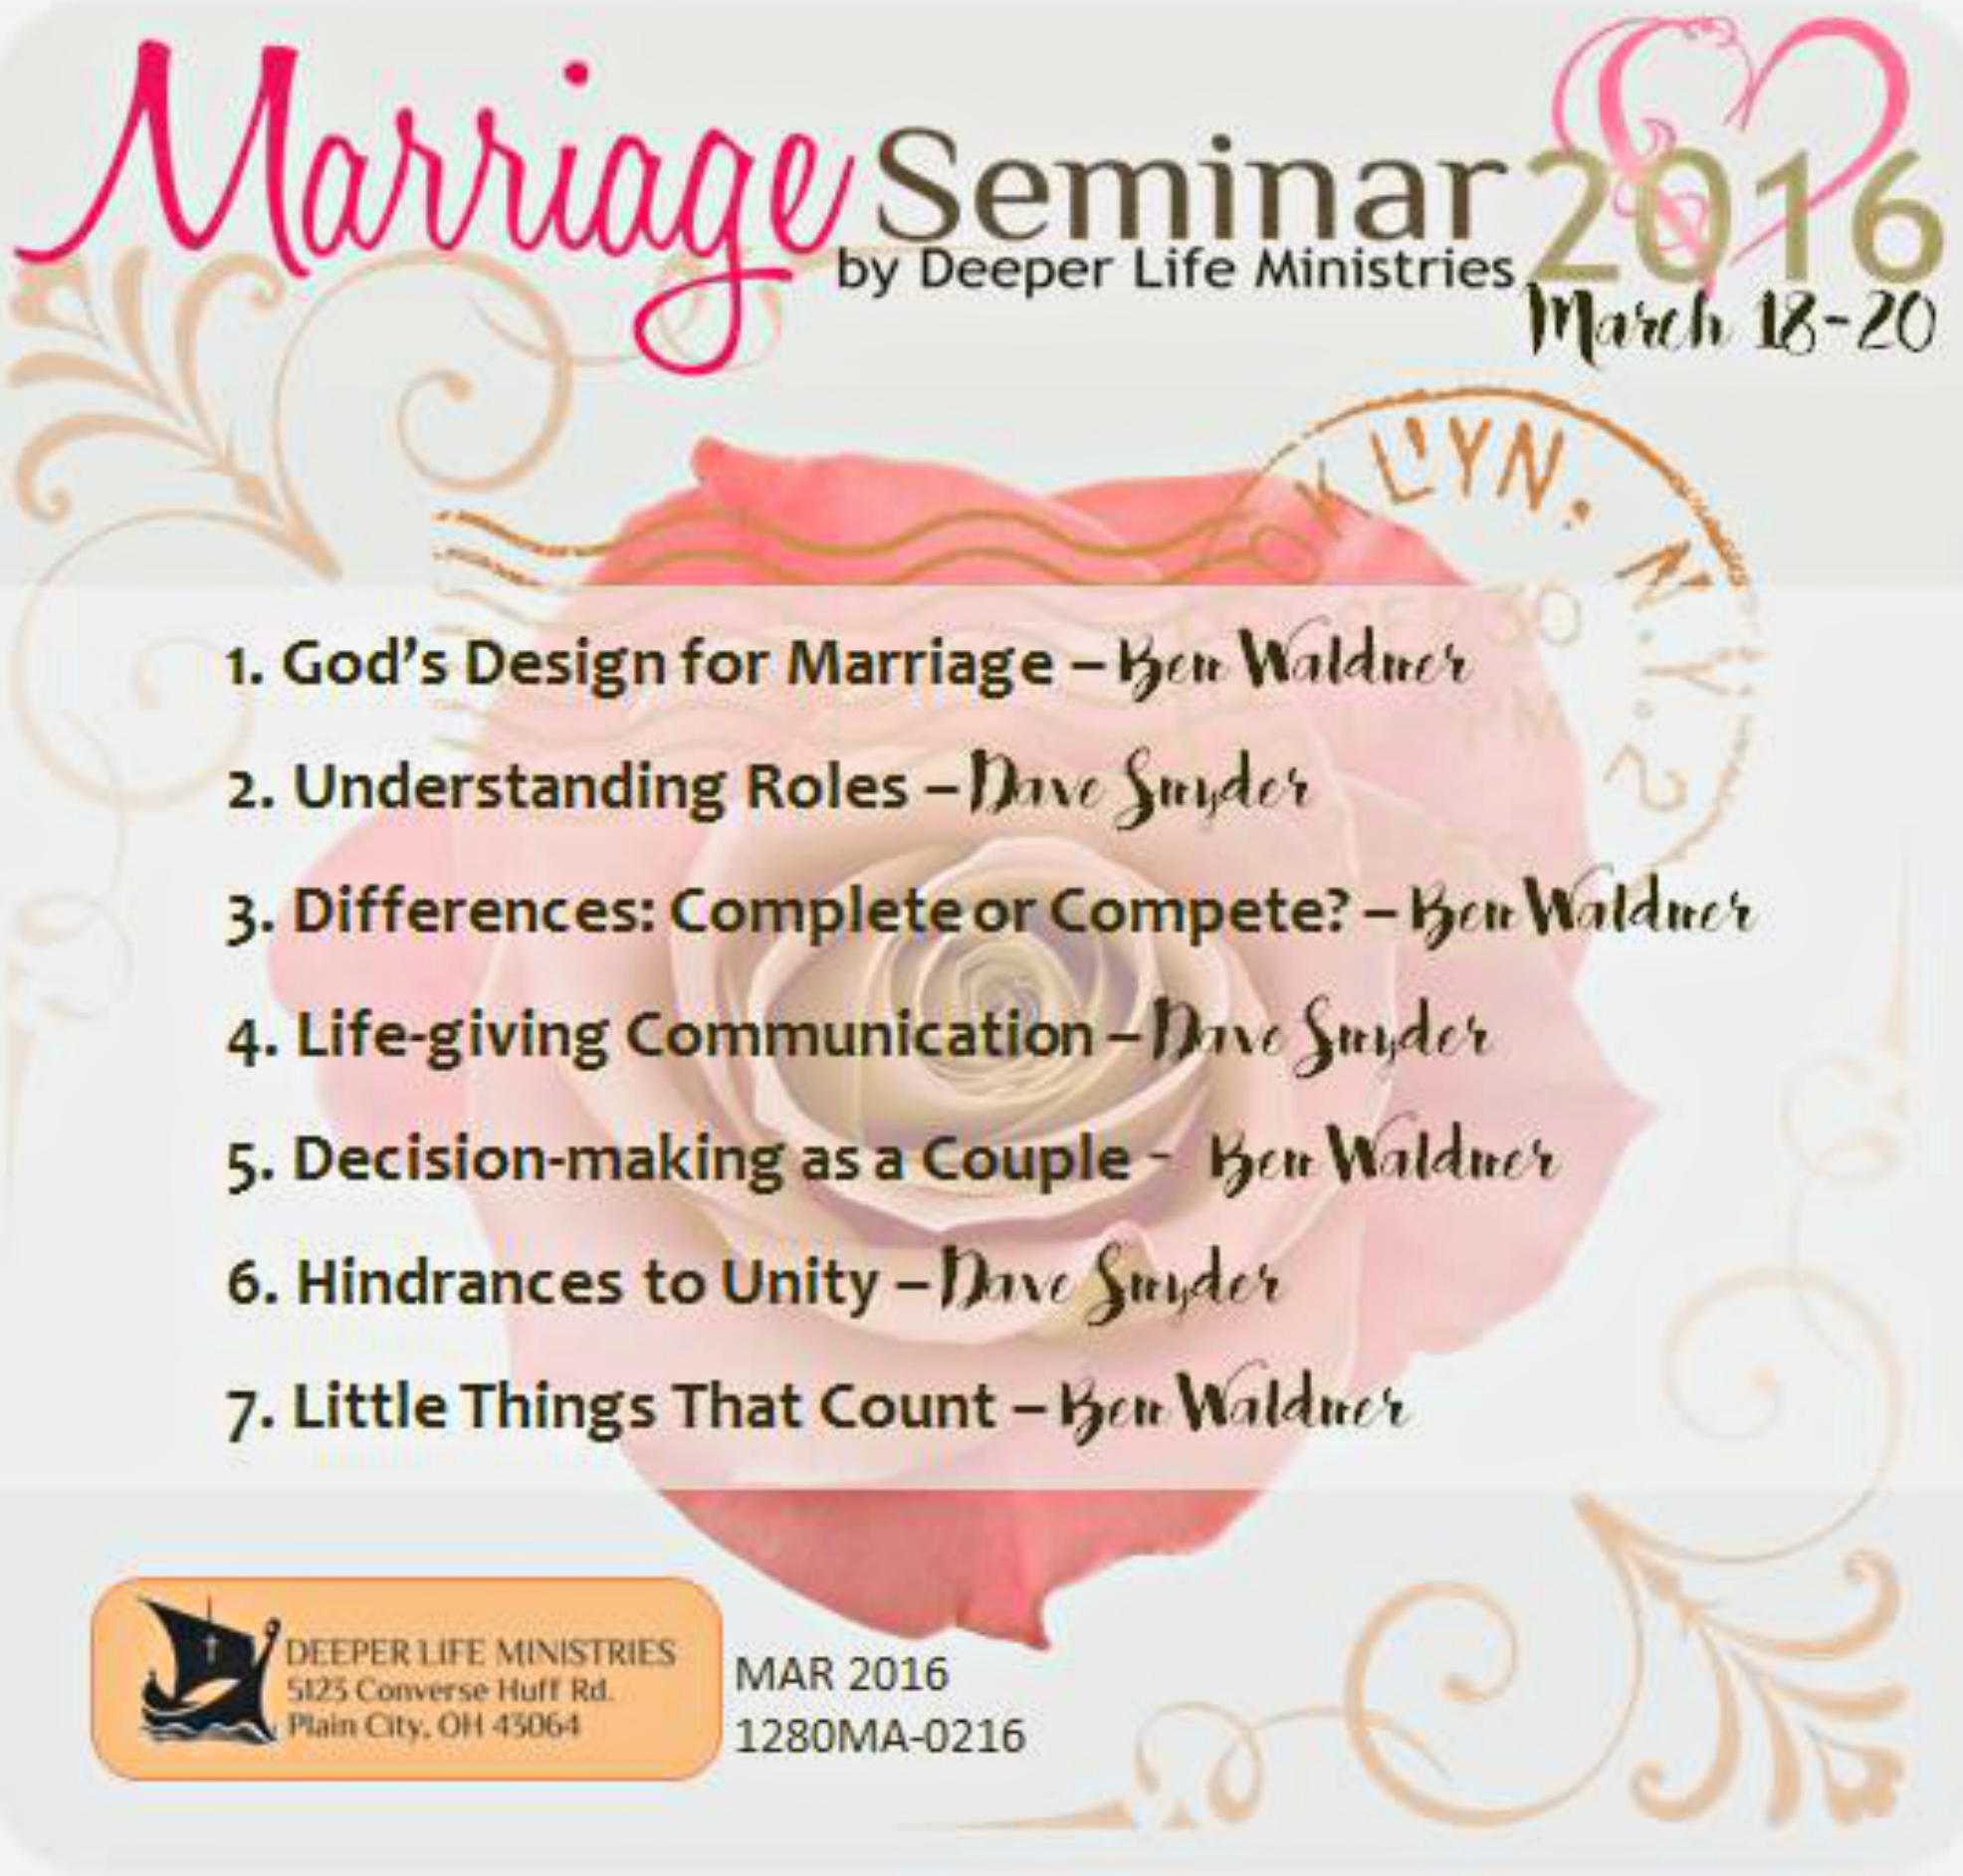 MARRIAGE SEMINAR 2016 7 CD Album